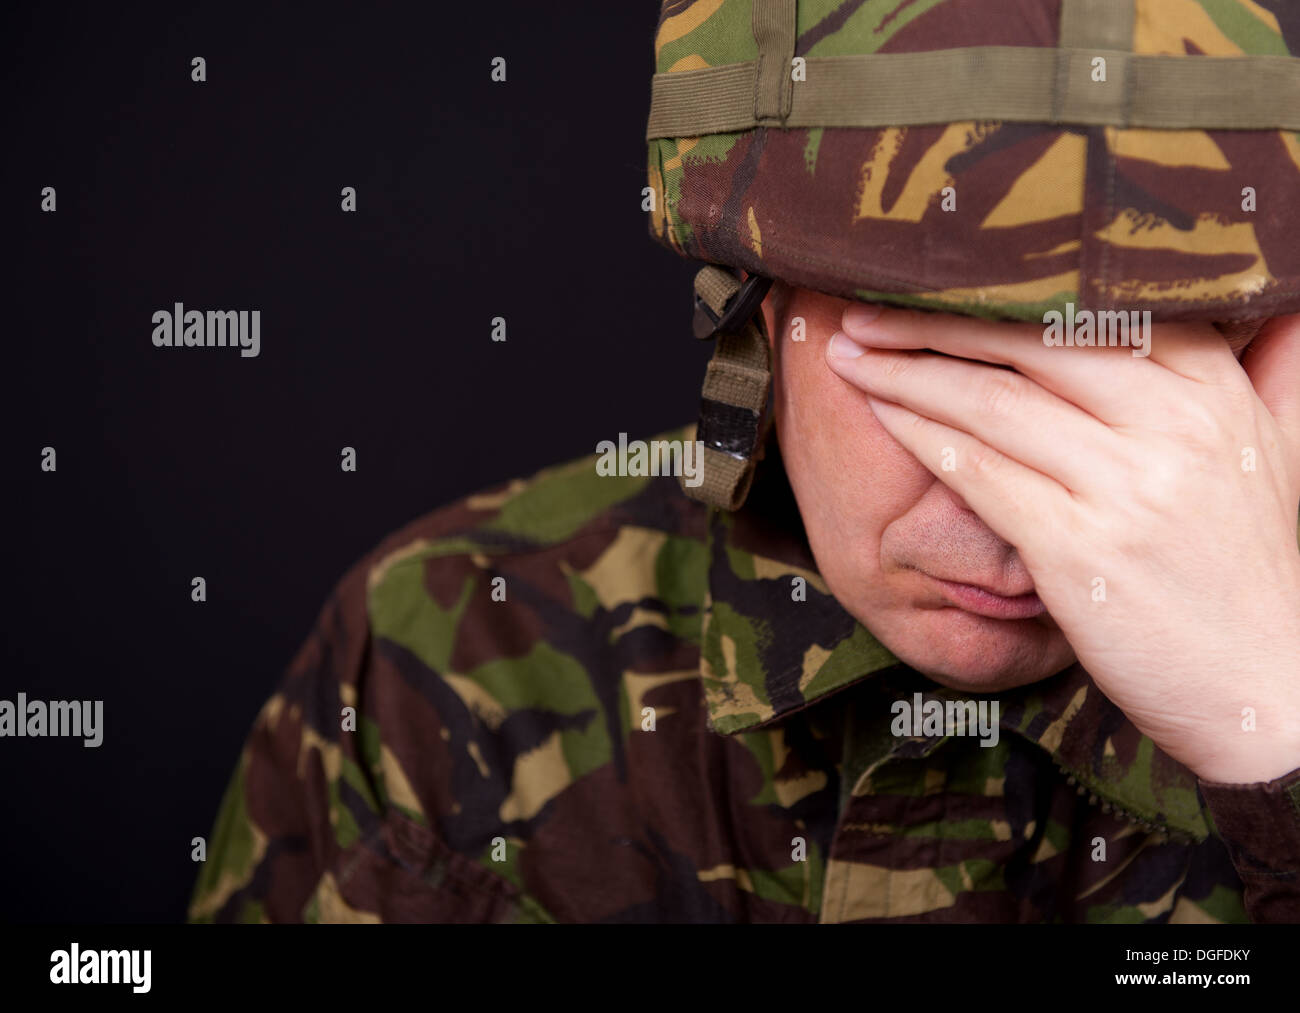 Soldier suffering with P.T.S.D./shell shock with his hand over his face. He wears British Military camouflage uniform. - Stock Image